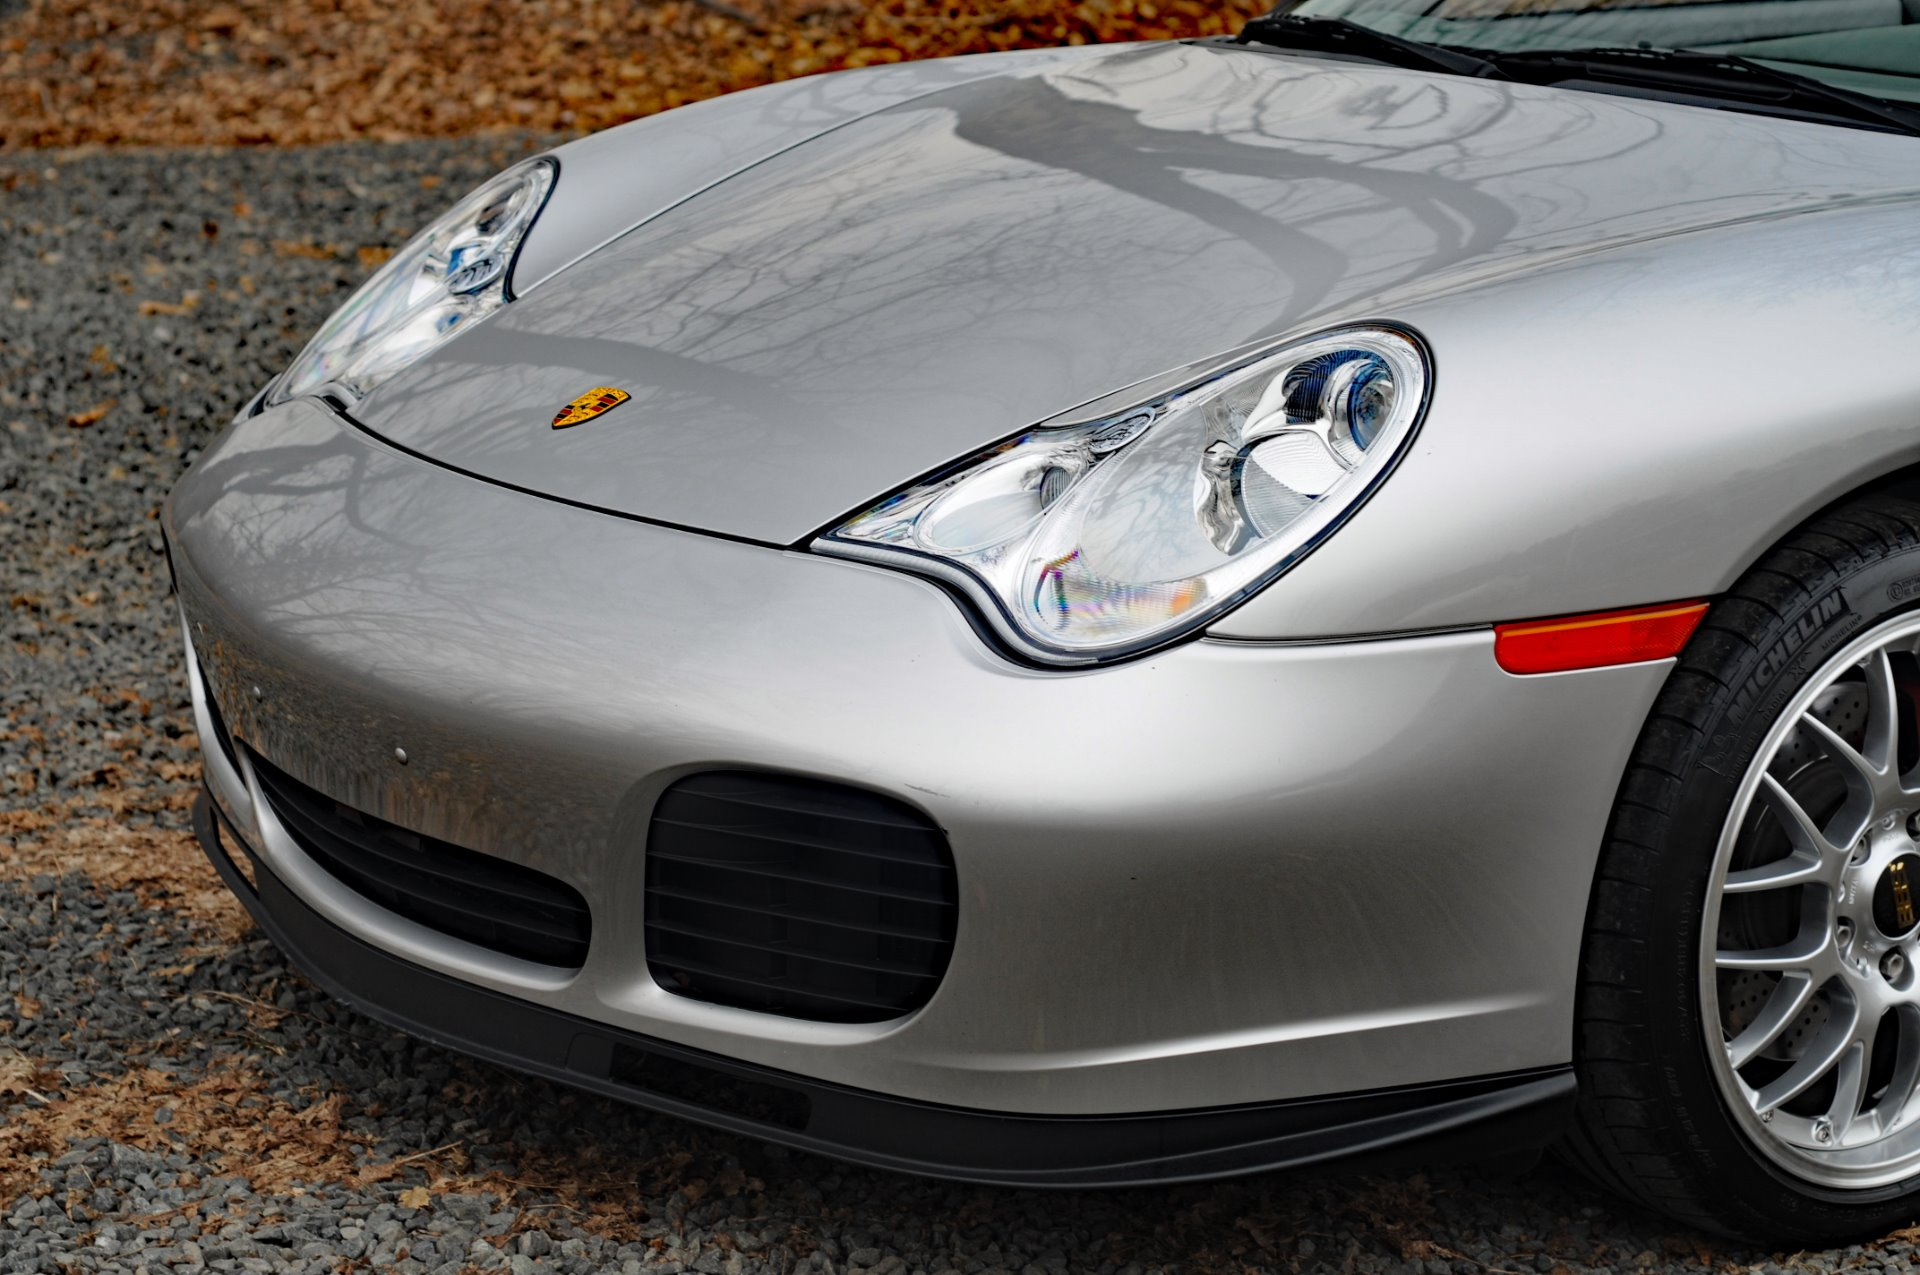 Used-2004-Porsche-911-Turbo-Cabriolet-Turbo